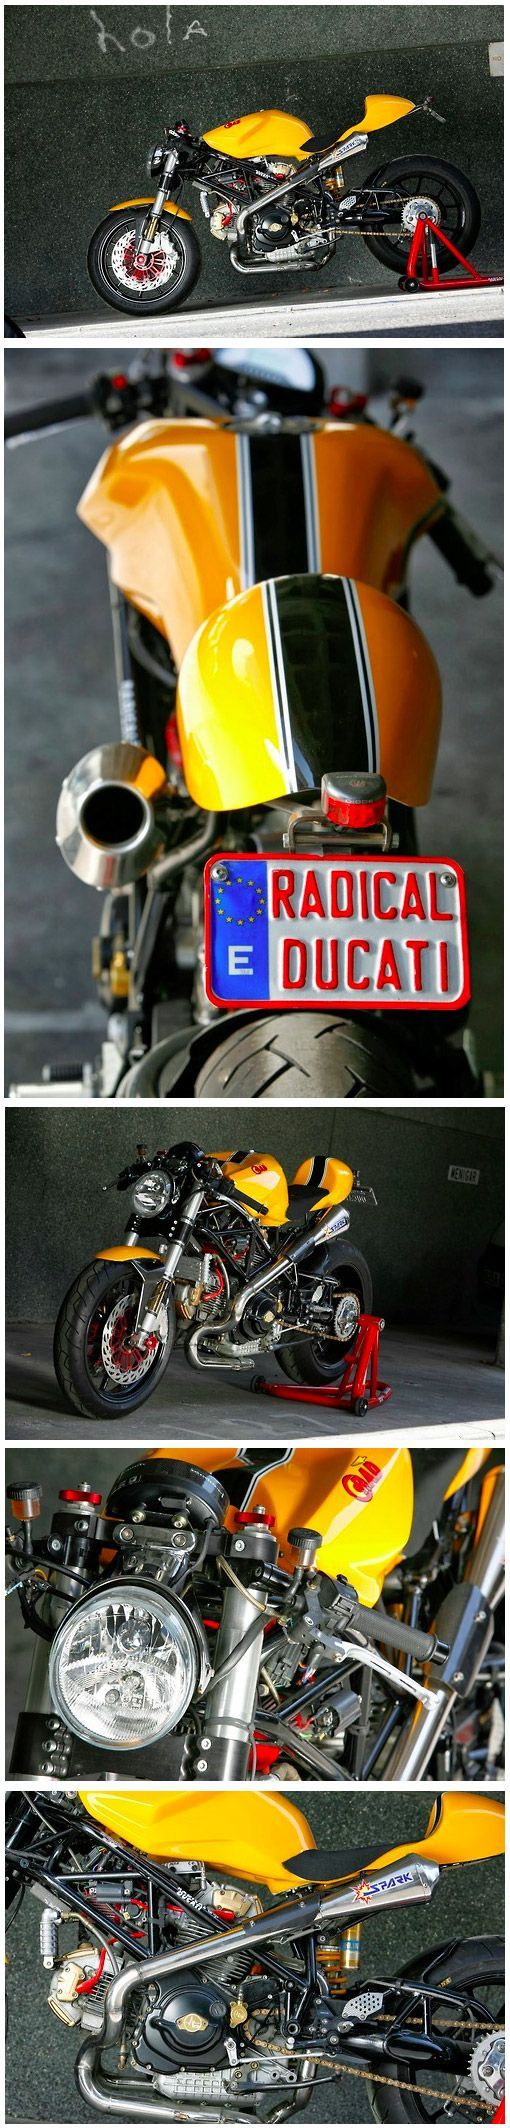 RAD02 CAFE RACER (2005) :: by Radical Ducati // Spain    Source link #Cafe #DUCATI #Racer #RAD02 #RADICAL #Spain